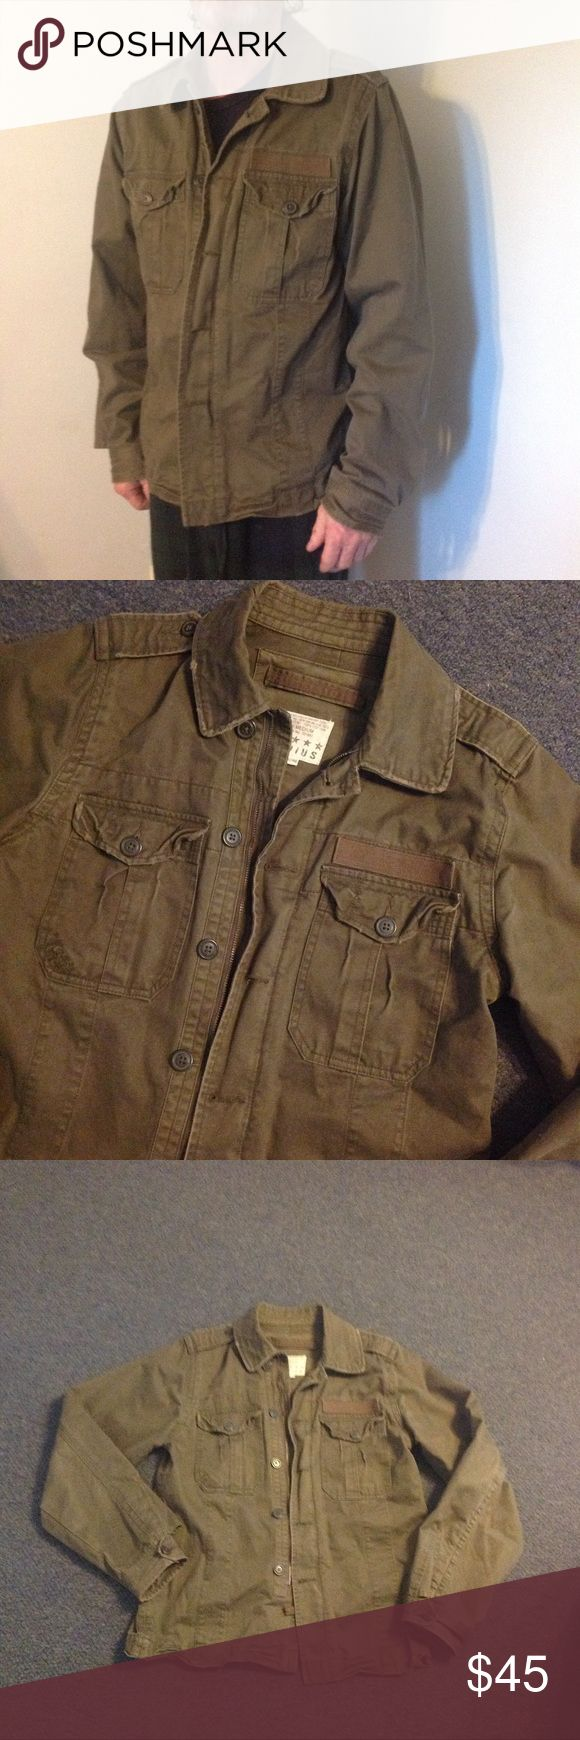 "Vintage Army Field Utility Jacket M Very nice Vintage style Army Field Jacket. Zips up with buttons over top. Marked size Medium. Runs big - could fit a Large. Great condition. Chest 43"" Length 28"" Radius Jackets & Coats"